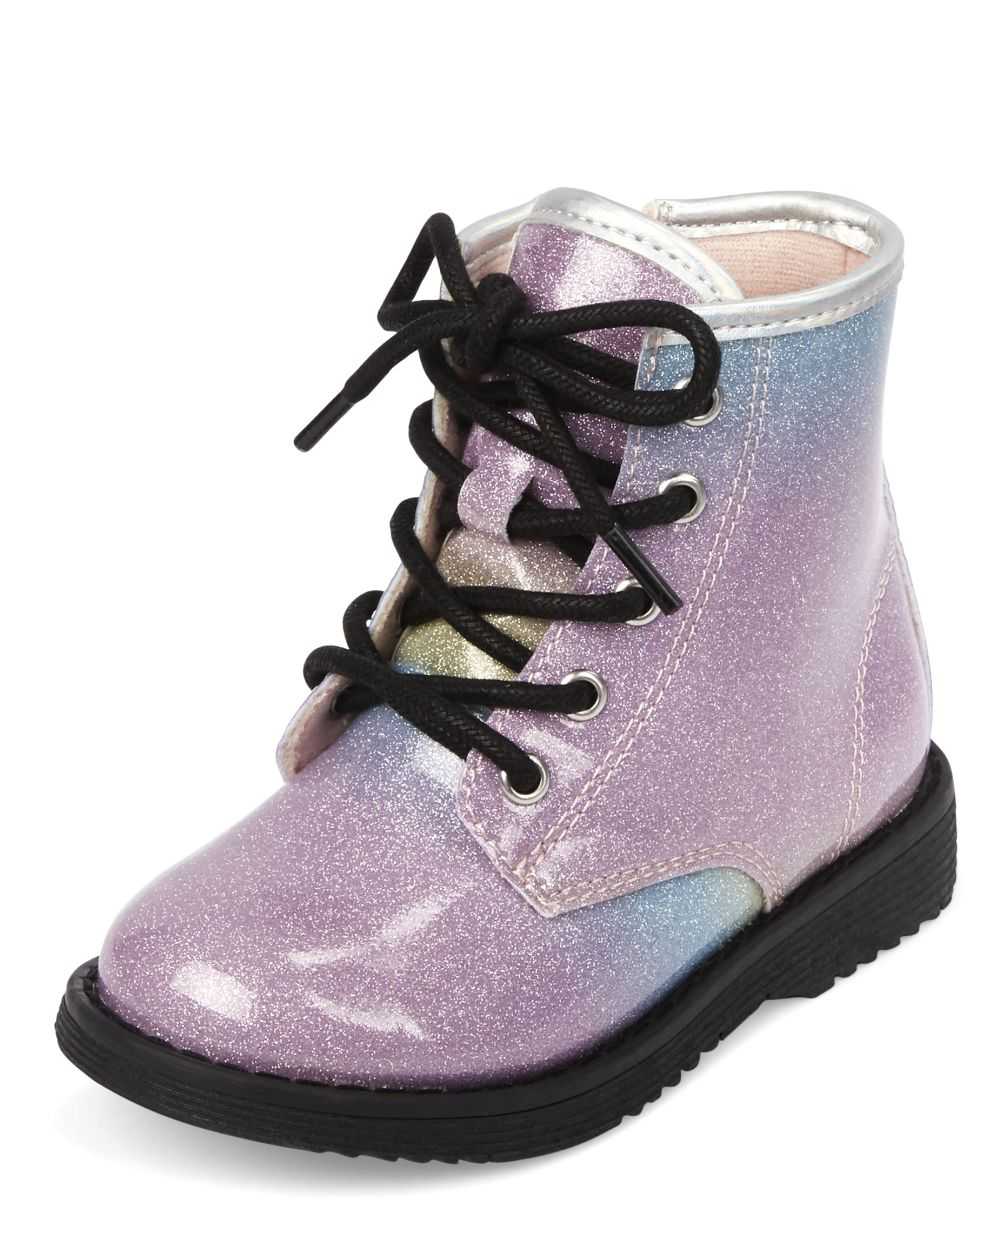 Toddler Girls Glitter Rainbow Lace Up Booties